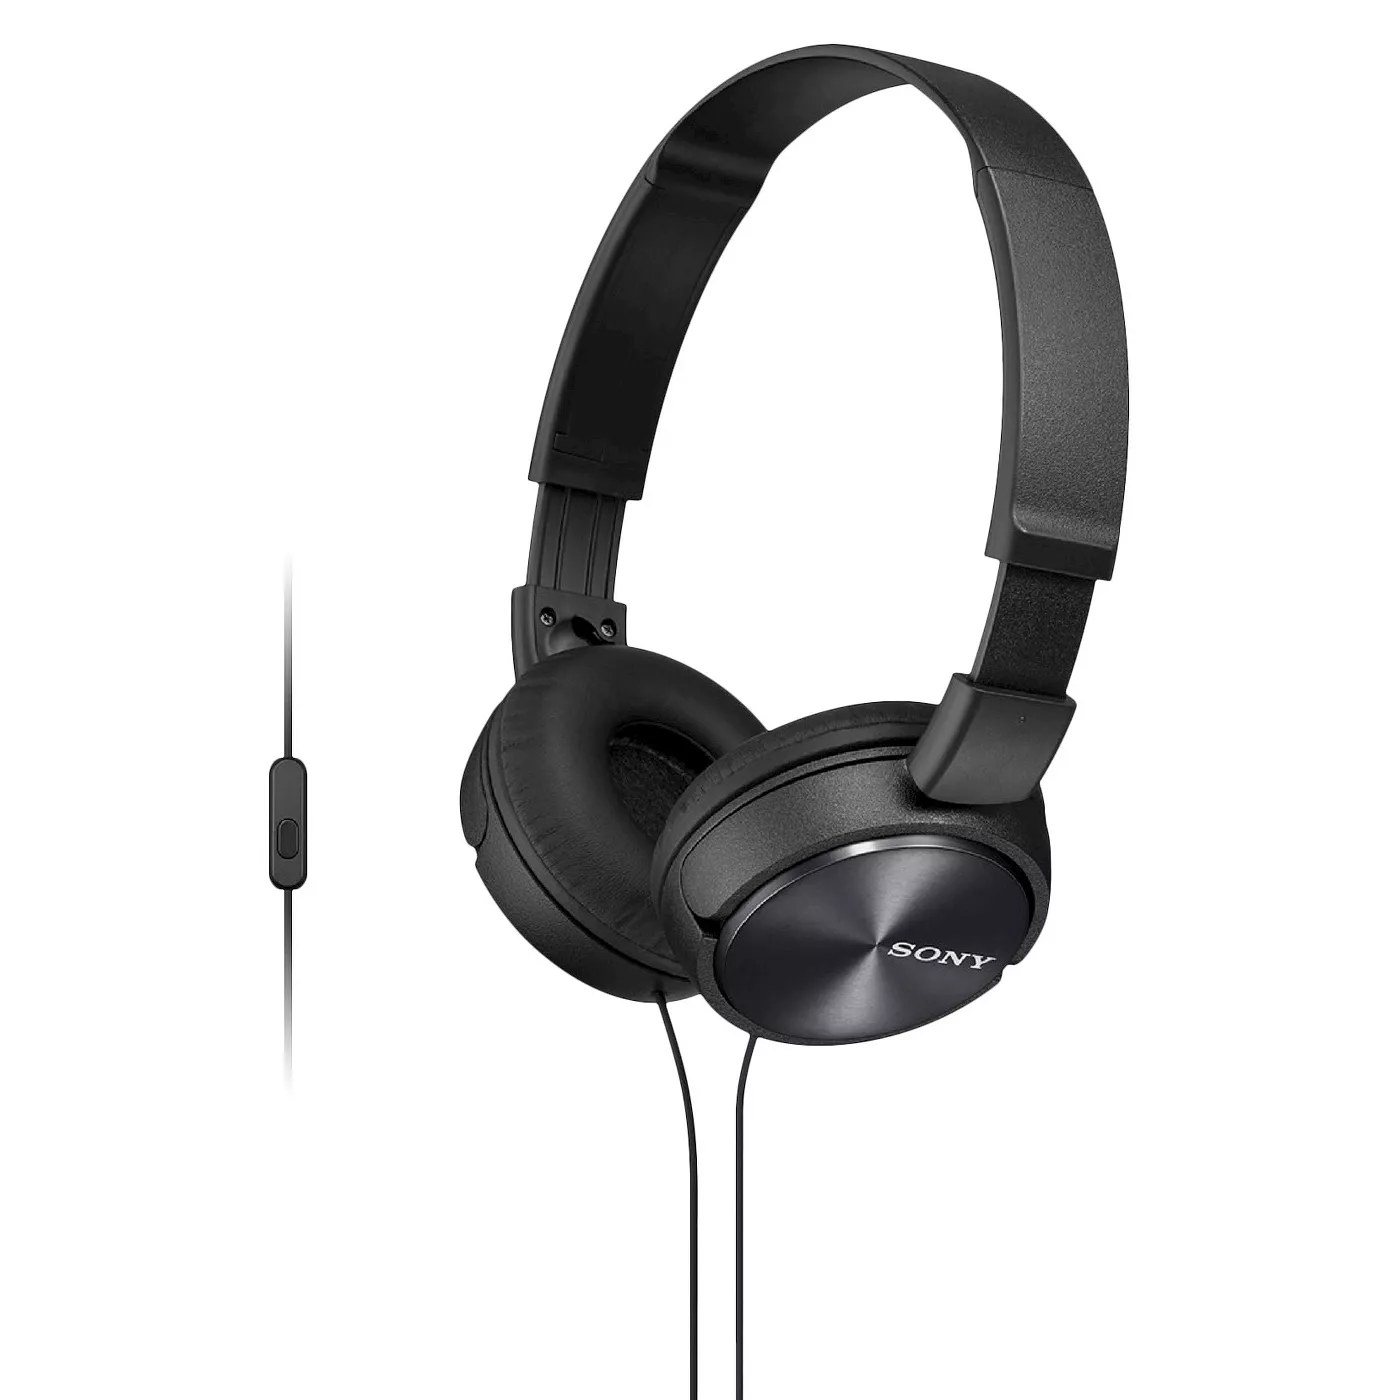 The wired Sony headset